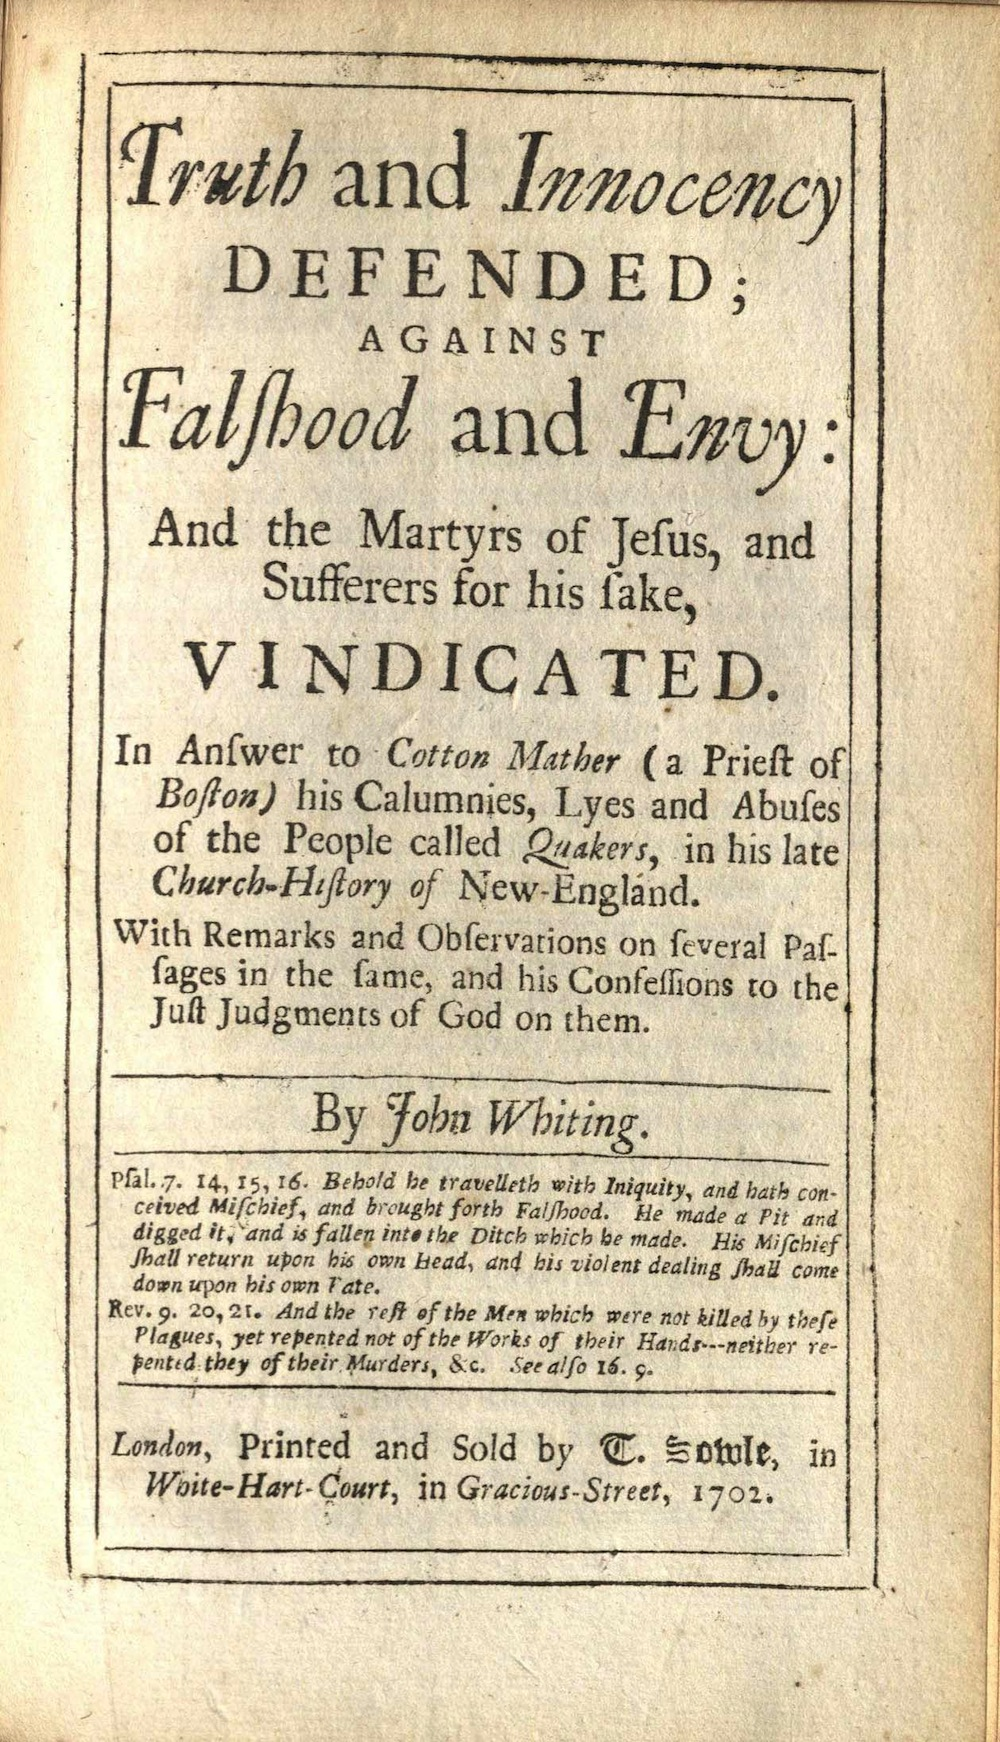 Whiting, Truth and innocency defended, 1702